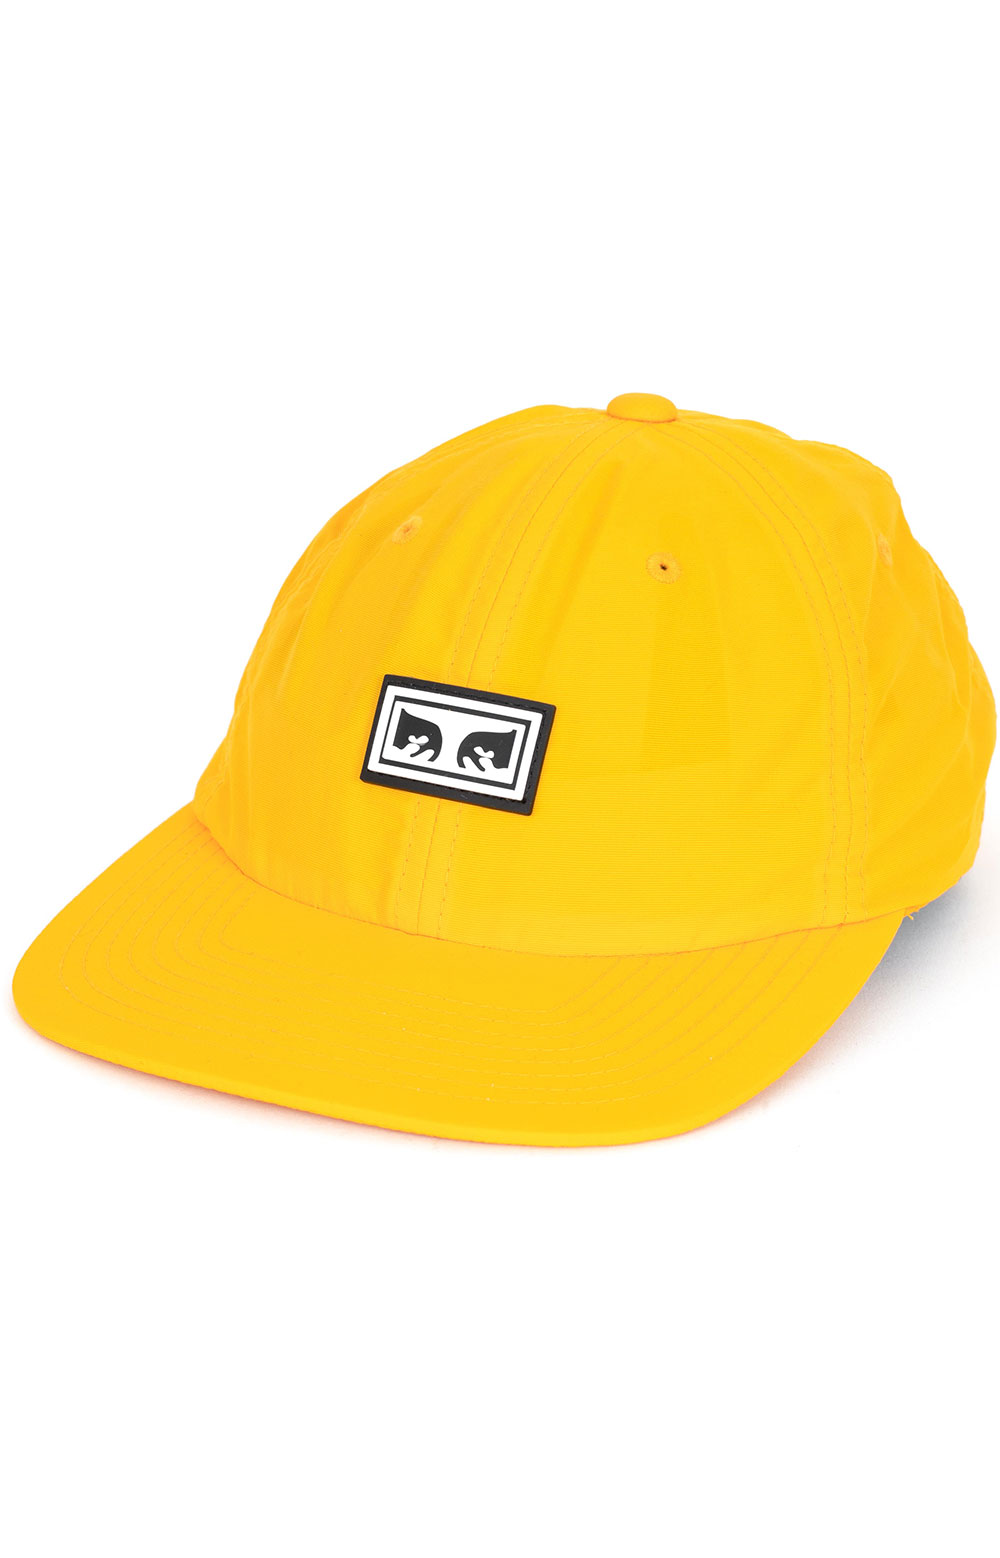 Alchemy Strap-Back Hat - Energy Yellow